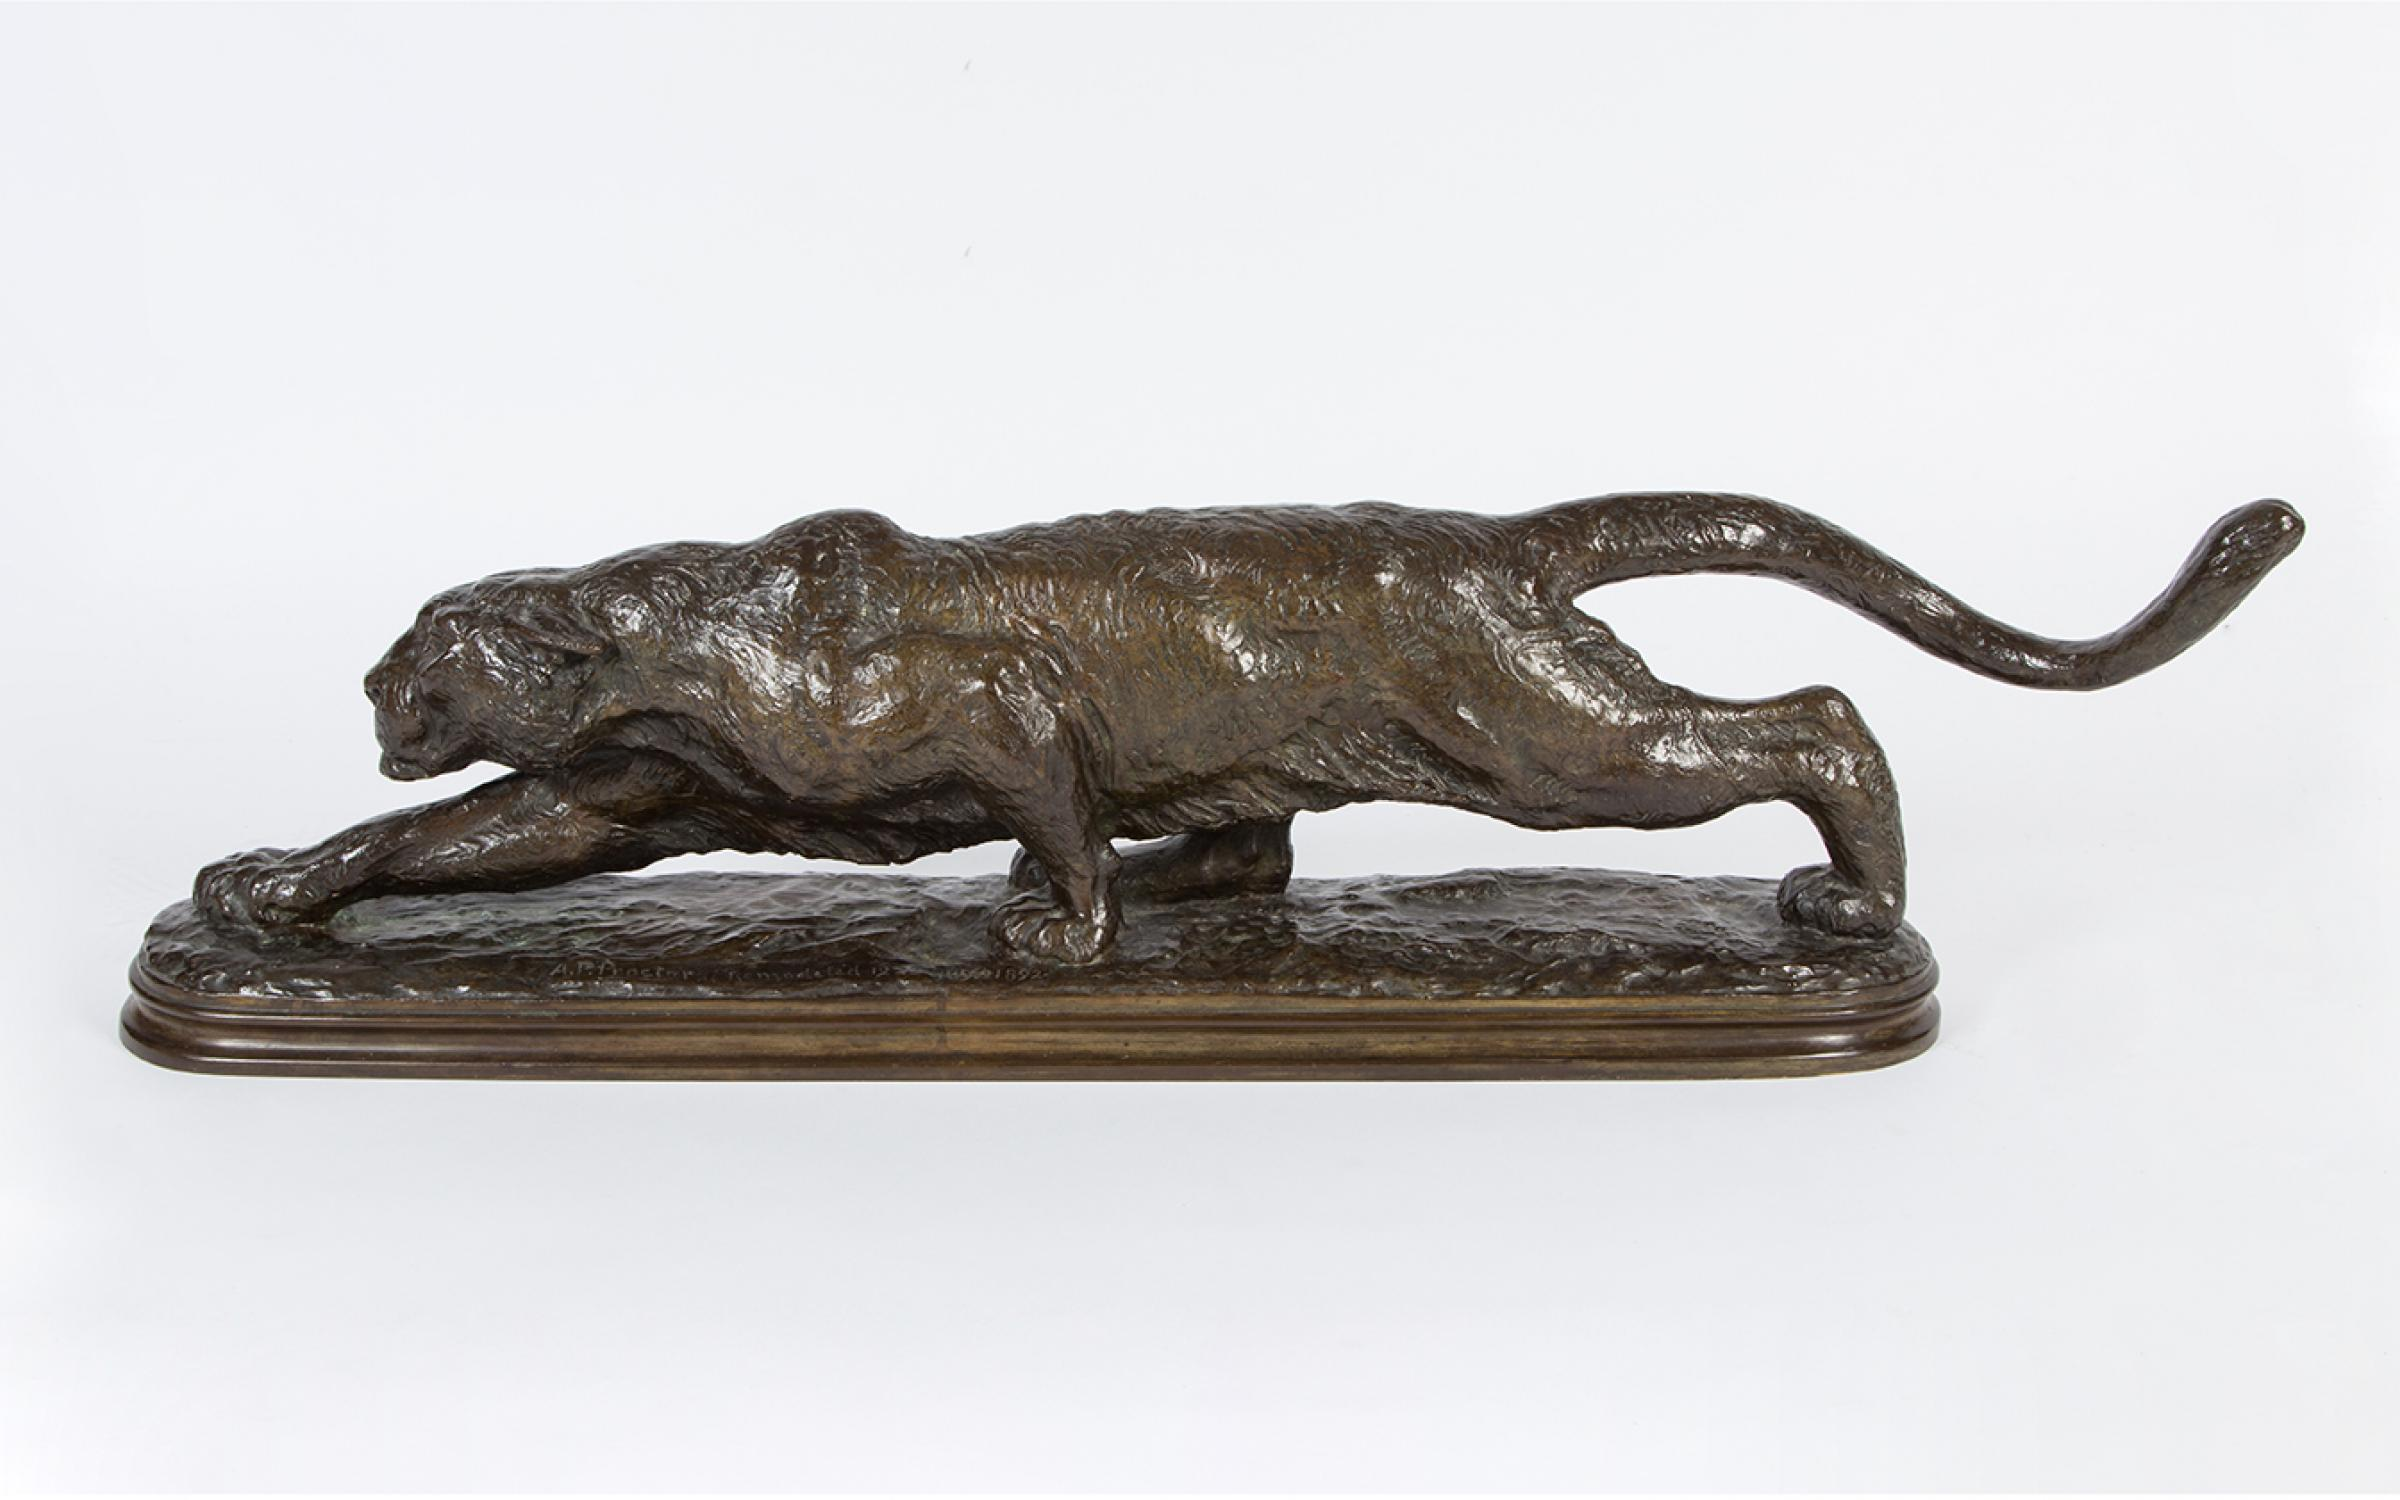 Alexander Phimister Proctor (American),  Large Stalking Panther, 1891-1893, bronze, Collection of the Utah Museum of Fine Arts, gift of The Proctor Foundation and The A. Phimister Proctor Museum, UMFA2018.1.1